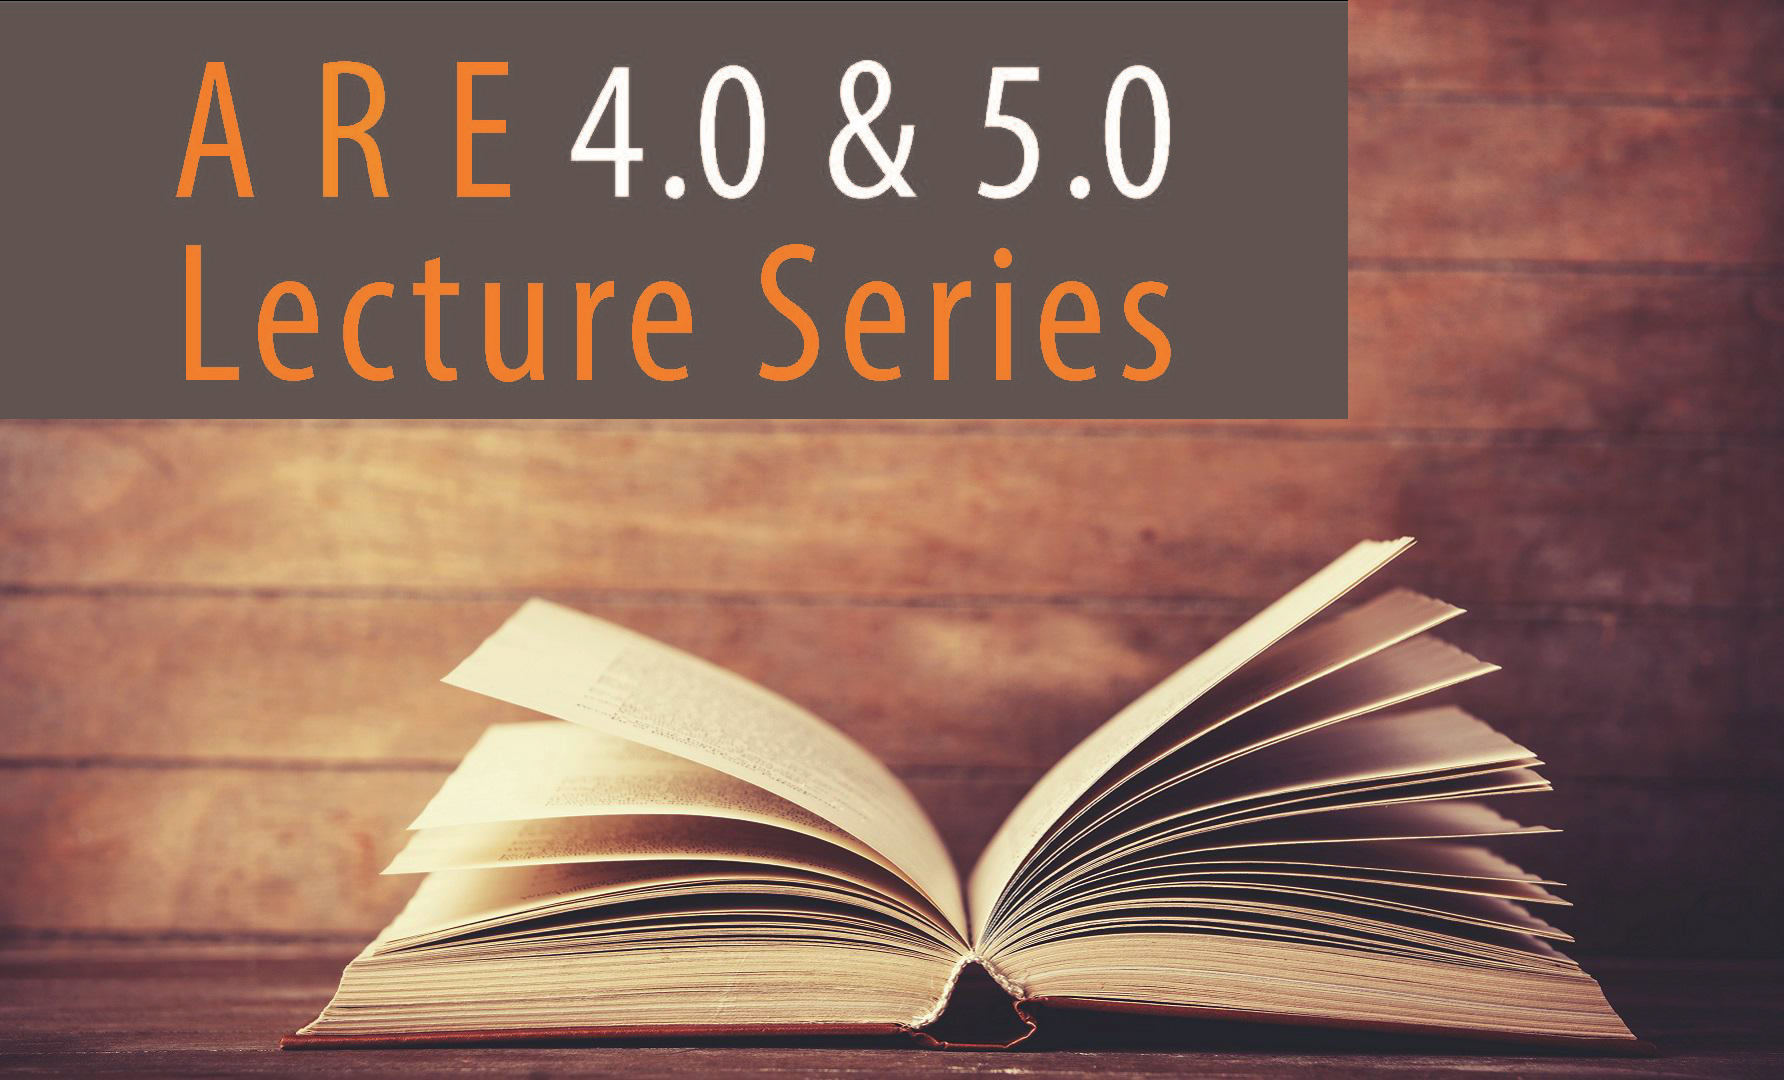 ARE Lecture Series Header